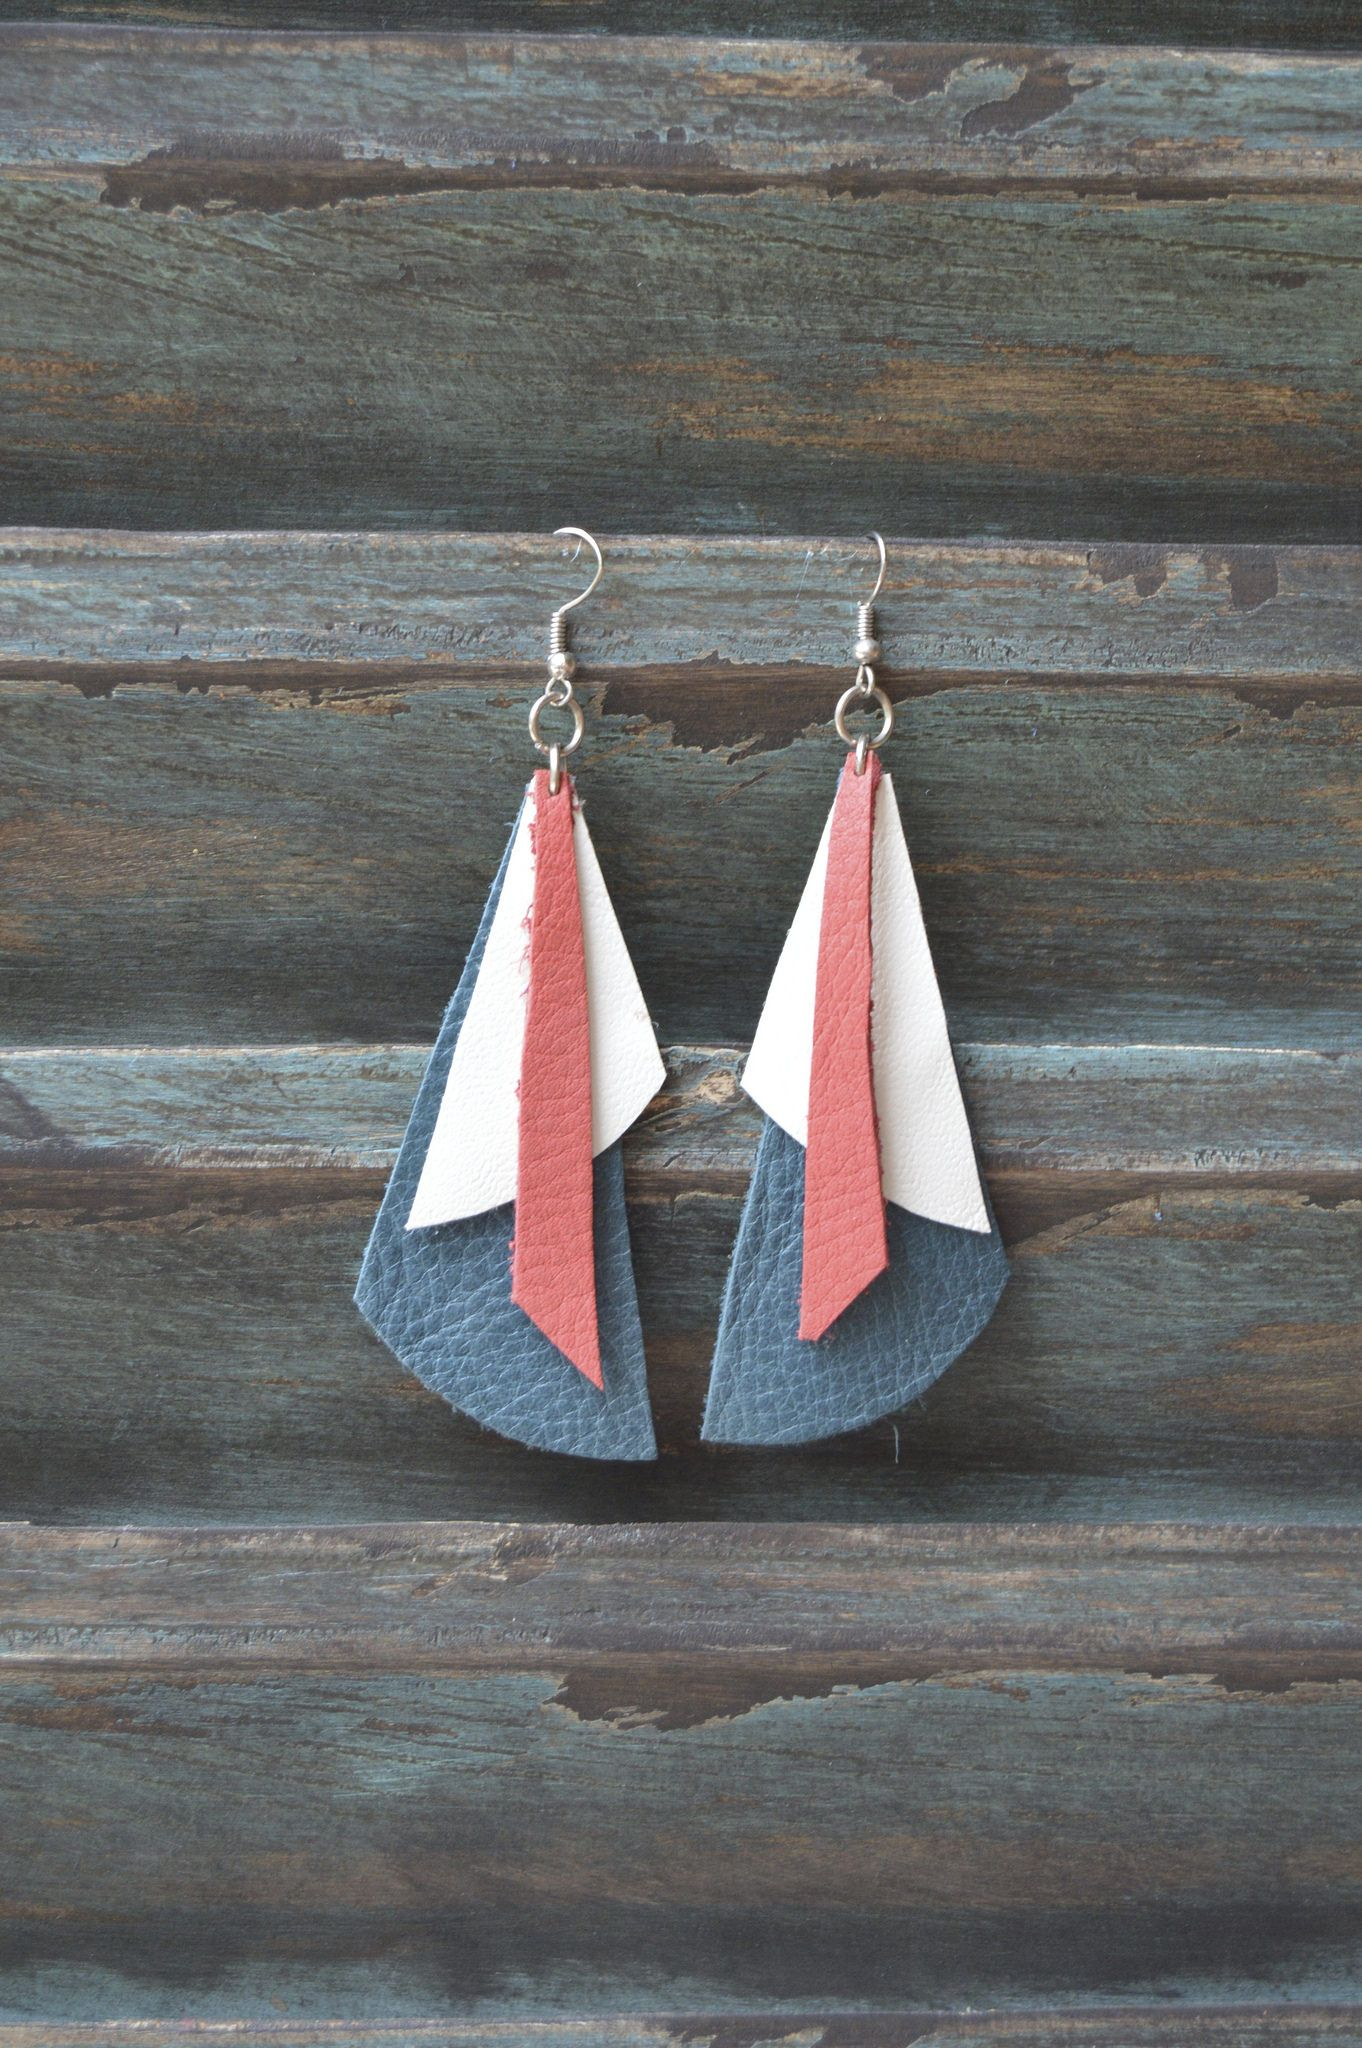 12316c1a7 Handmade Leather Earrings from Thailand #140 · Purchase Effect · Online  Store Powered by Storenvy